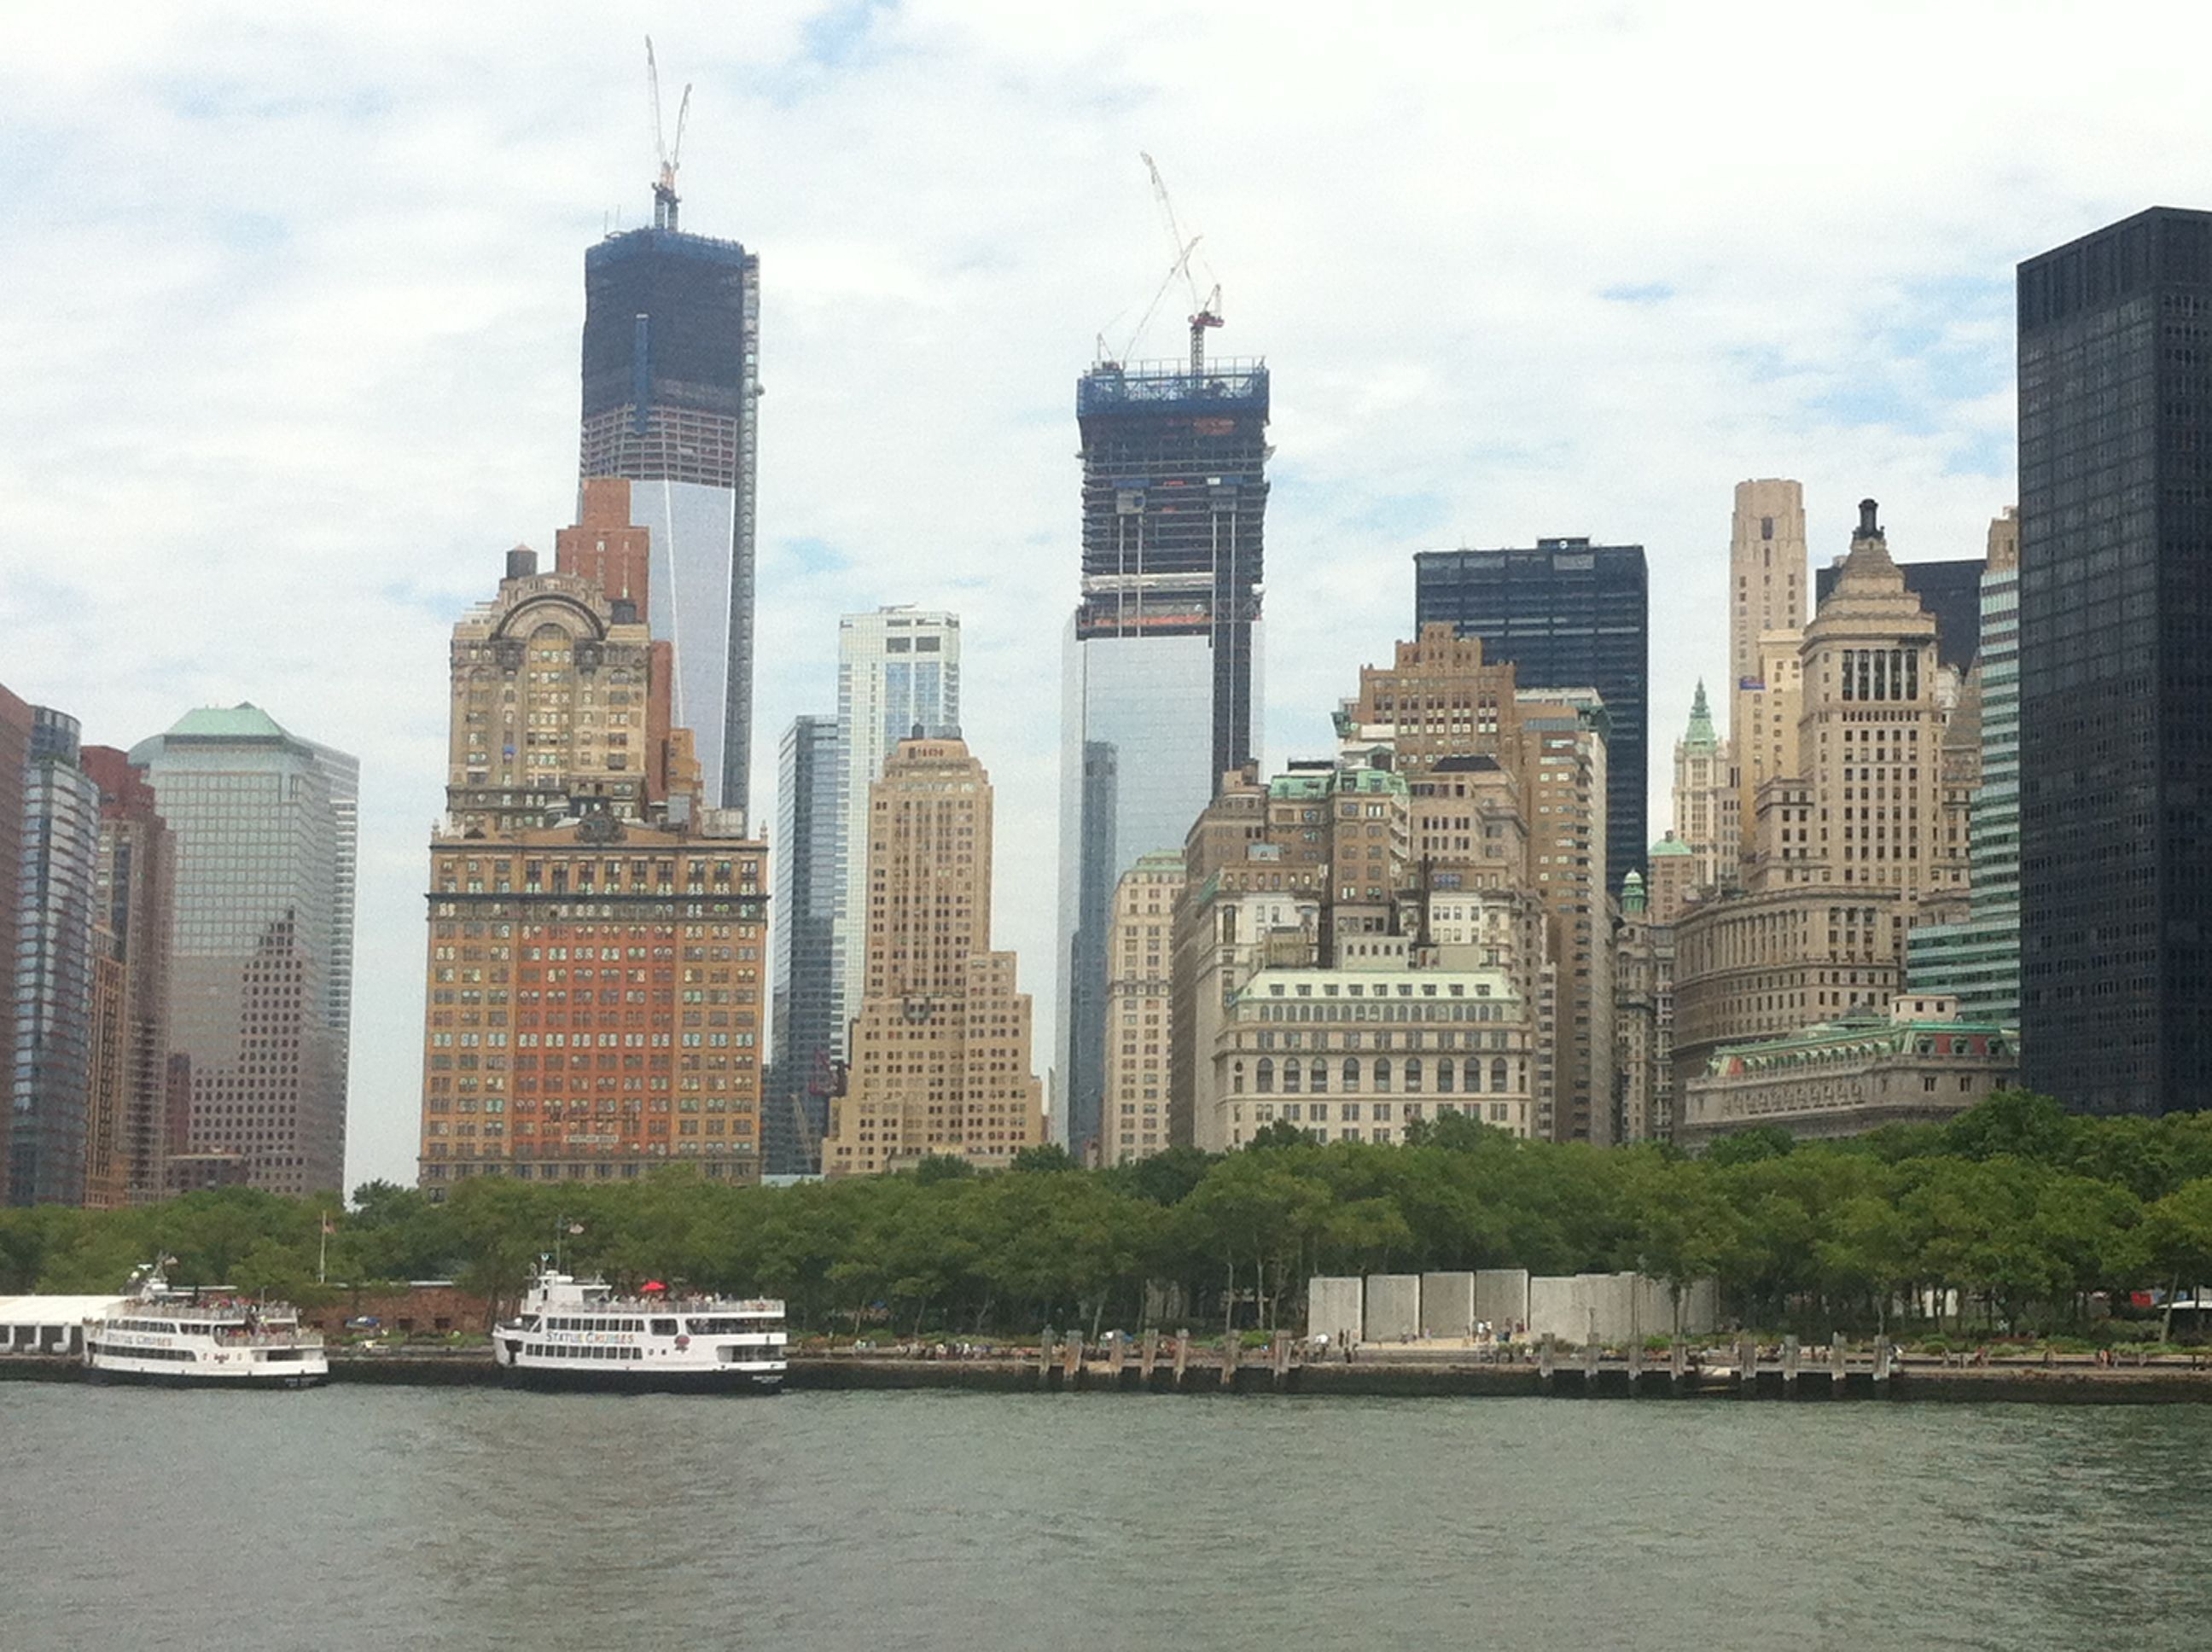 Lower manhattan attractions in downtown new york city for Attractions new york city